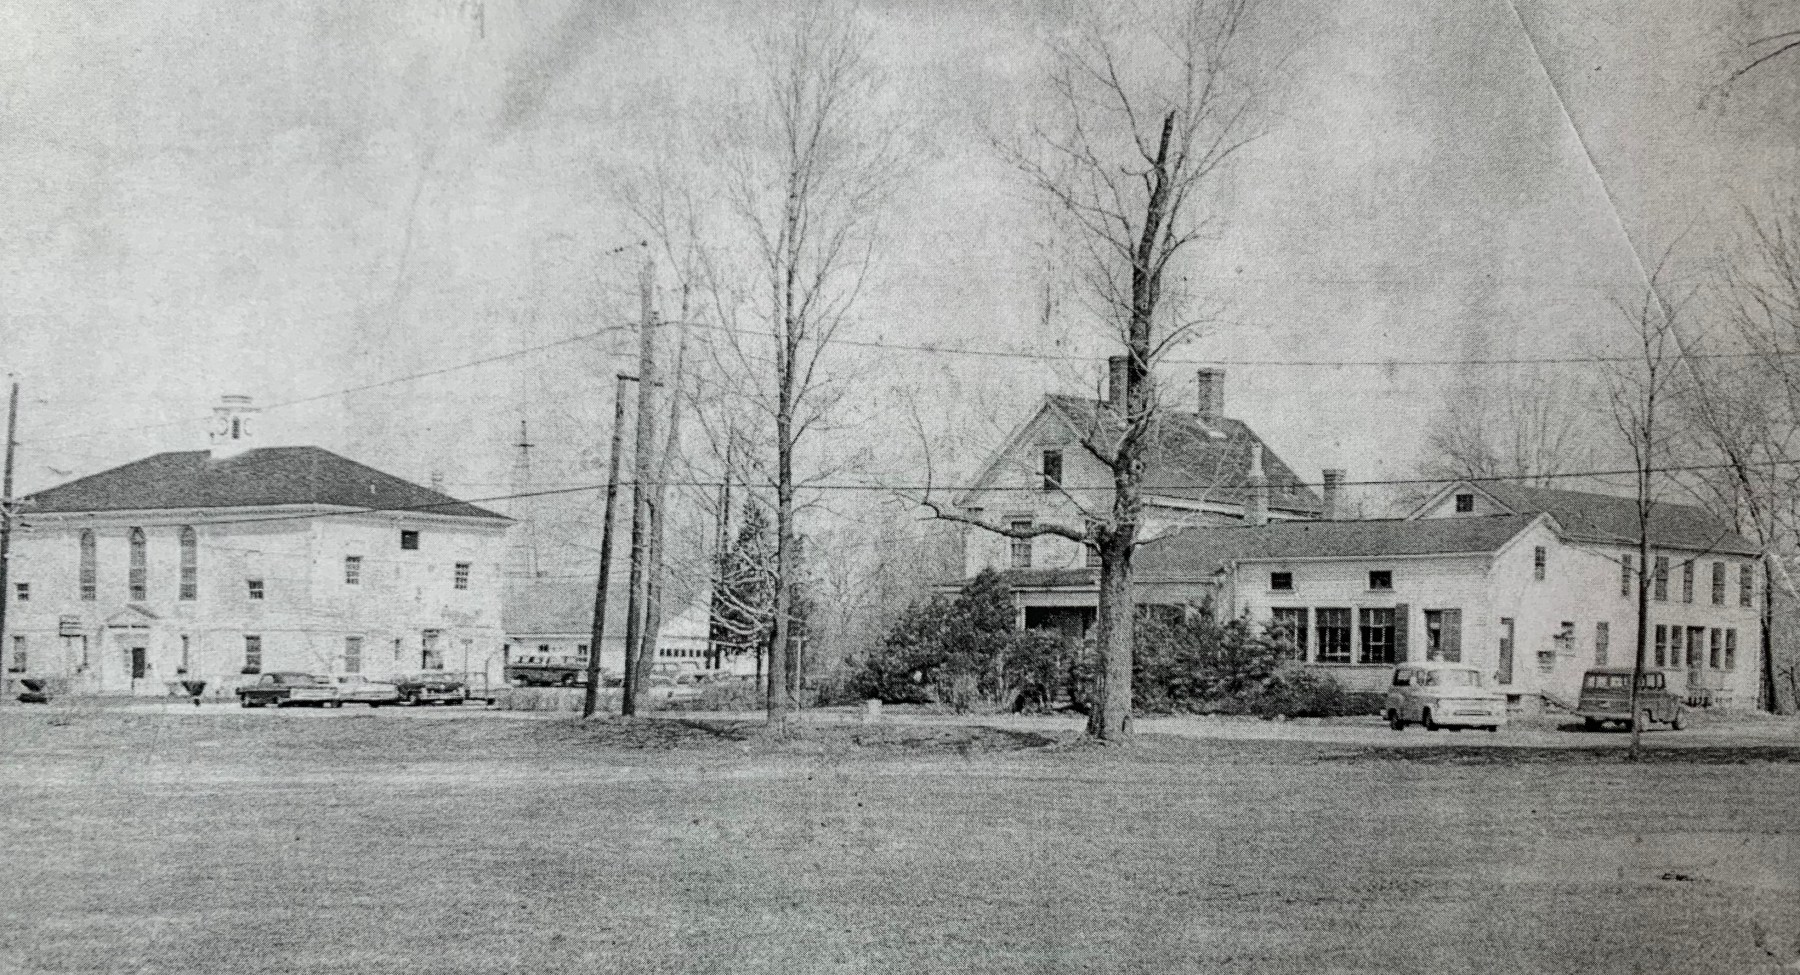 Town Hall and Silas Cutler's General Store, c. 1950